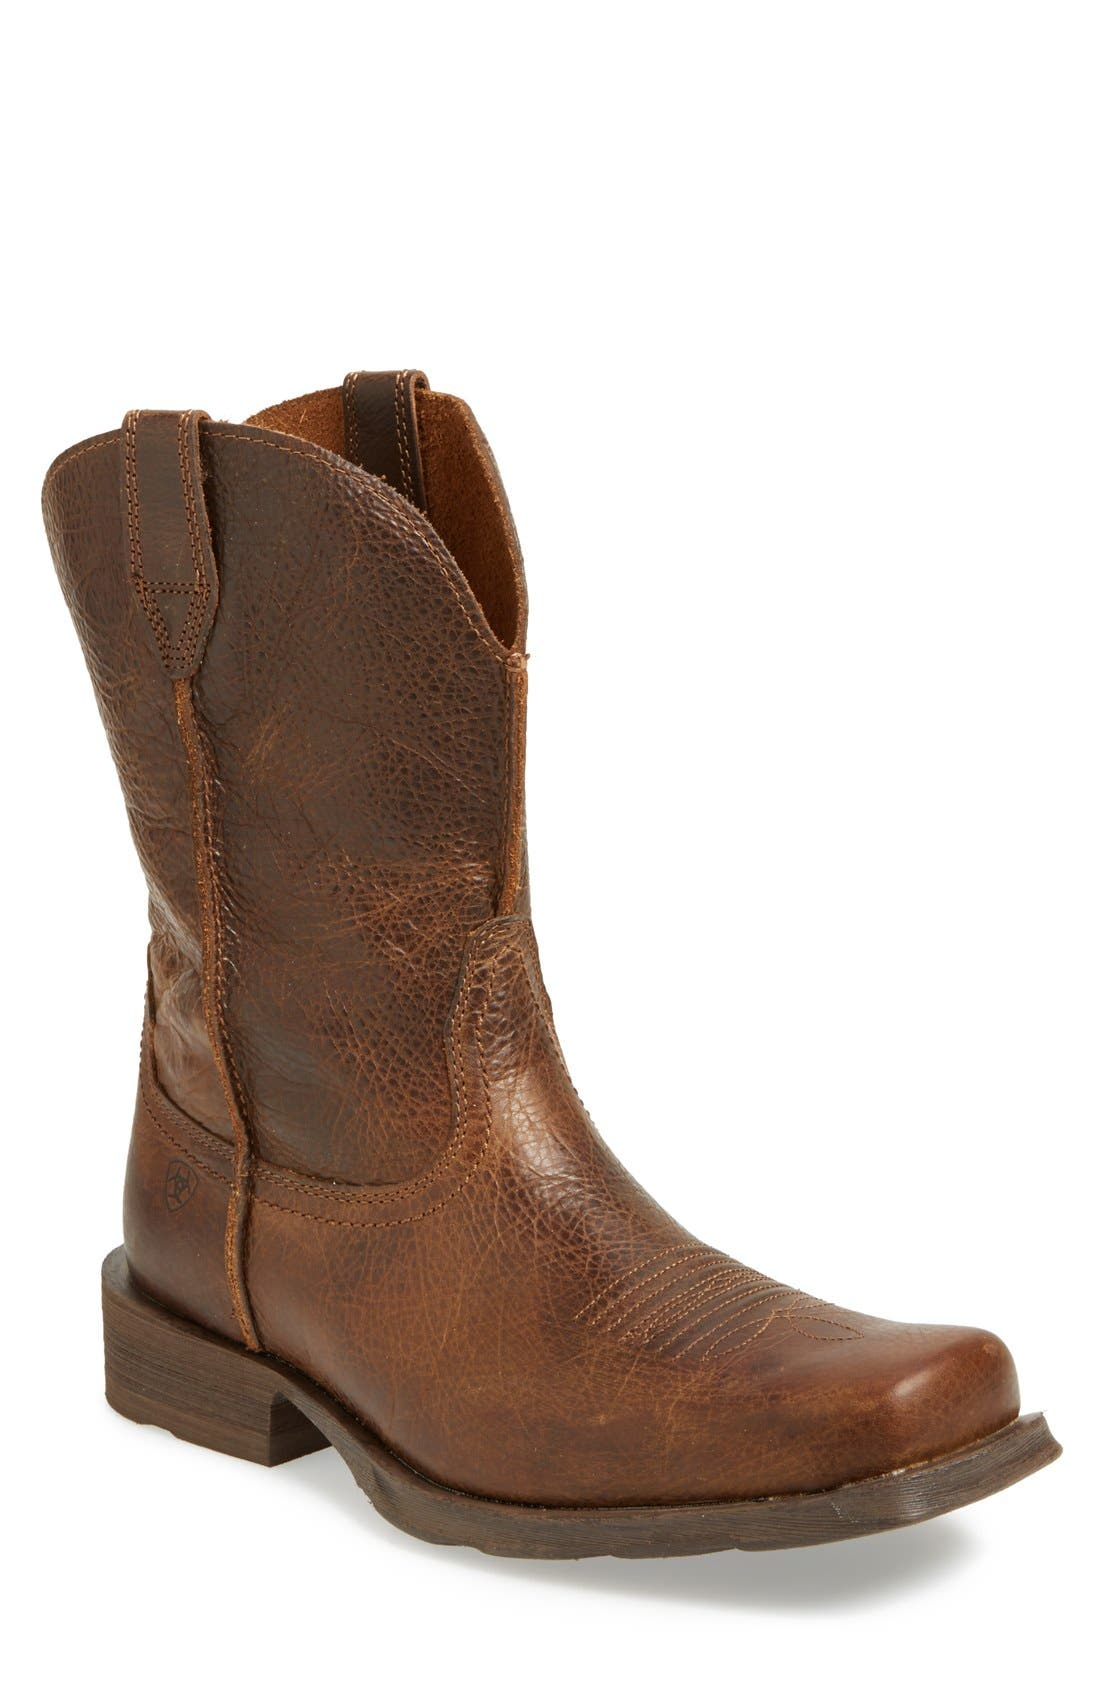 Ariat 'Rambler' Square Toe Leather Cowboy Boot (Men)